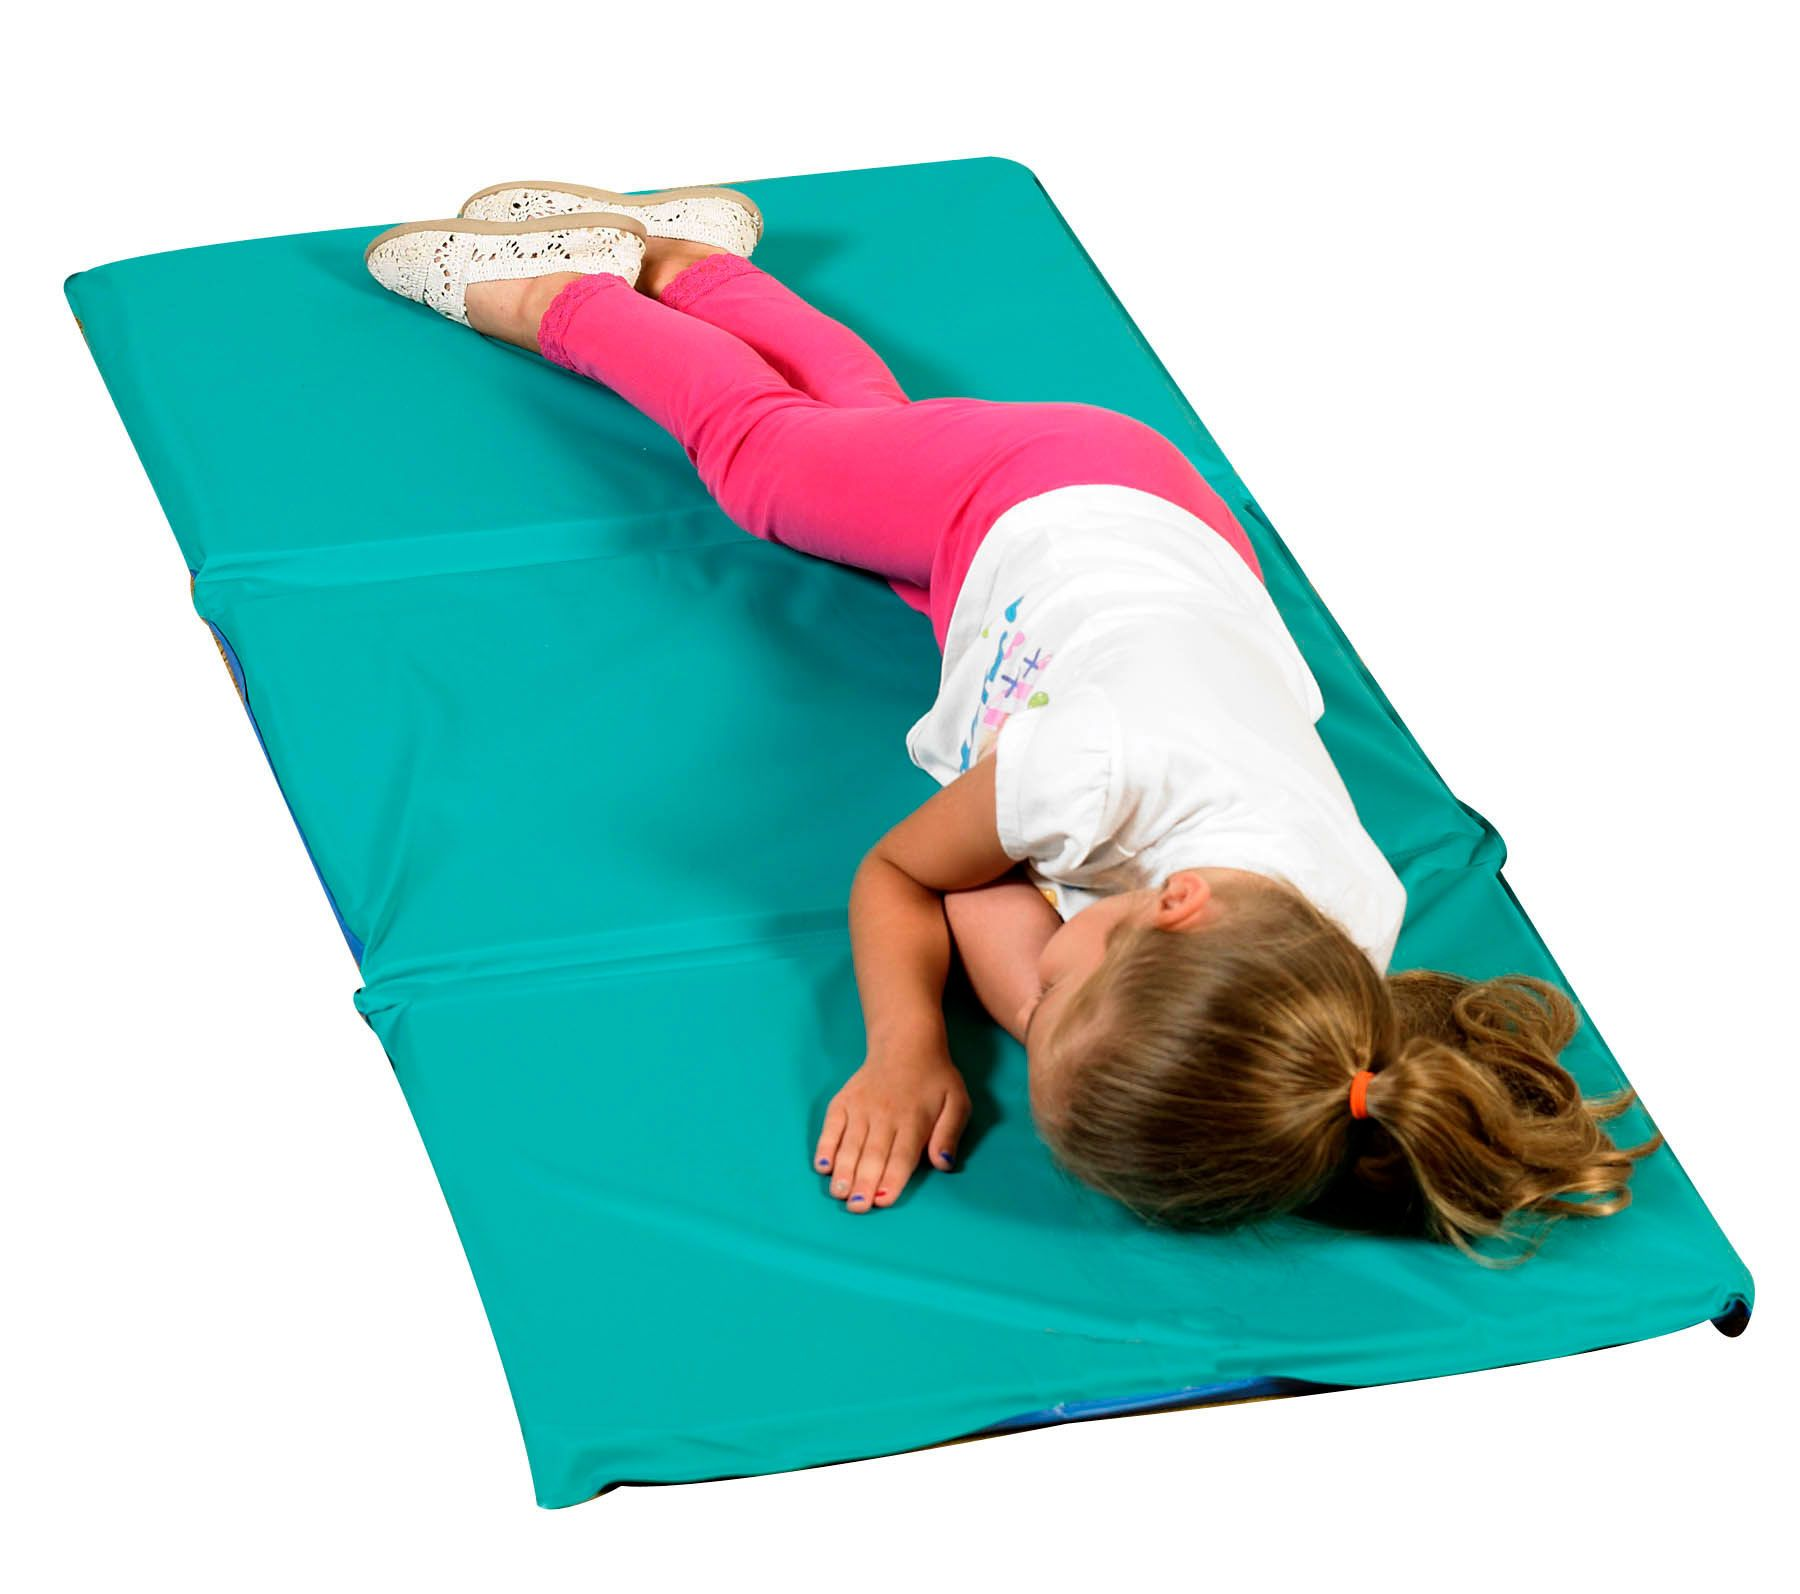 Angels Rest Nap Mat 1 Teal Blue 3 Section Folding Mat 10 Pack Children S Factory Nap Mat Infection Control Folding Mat